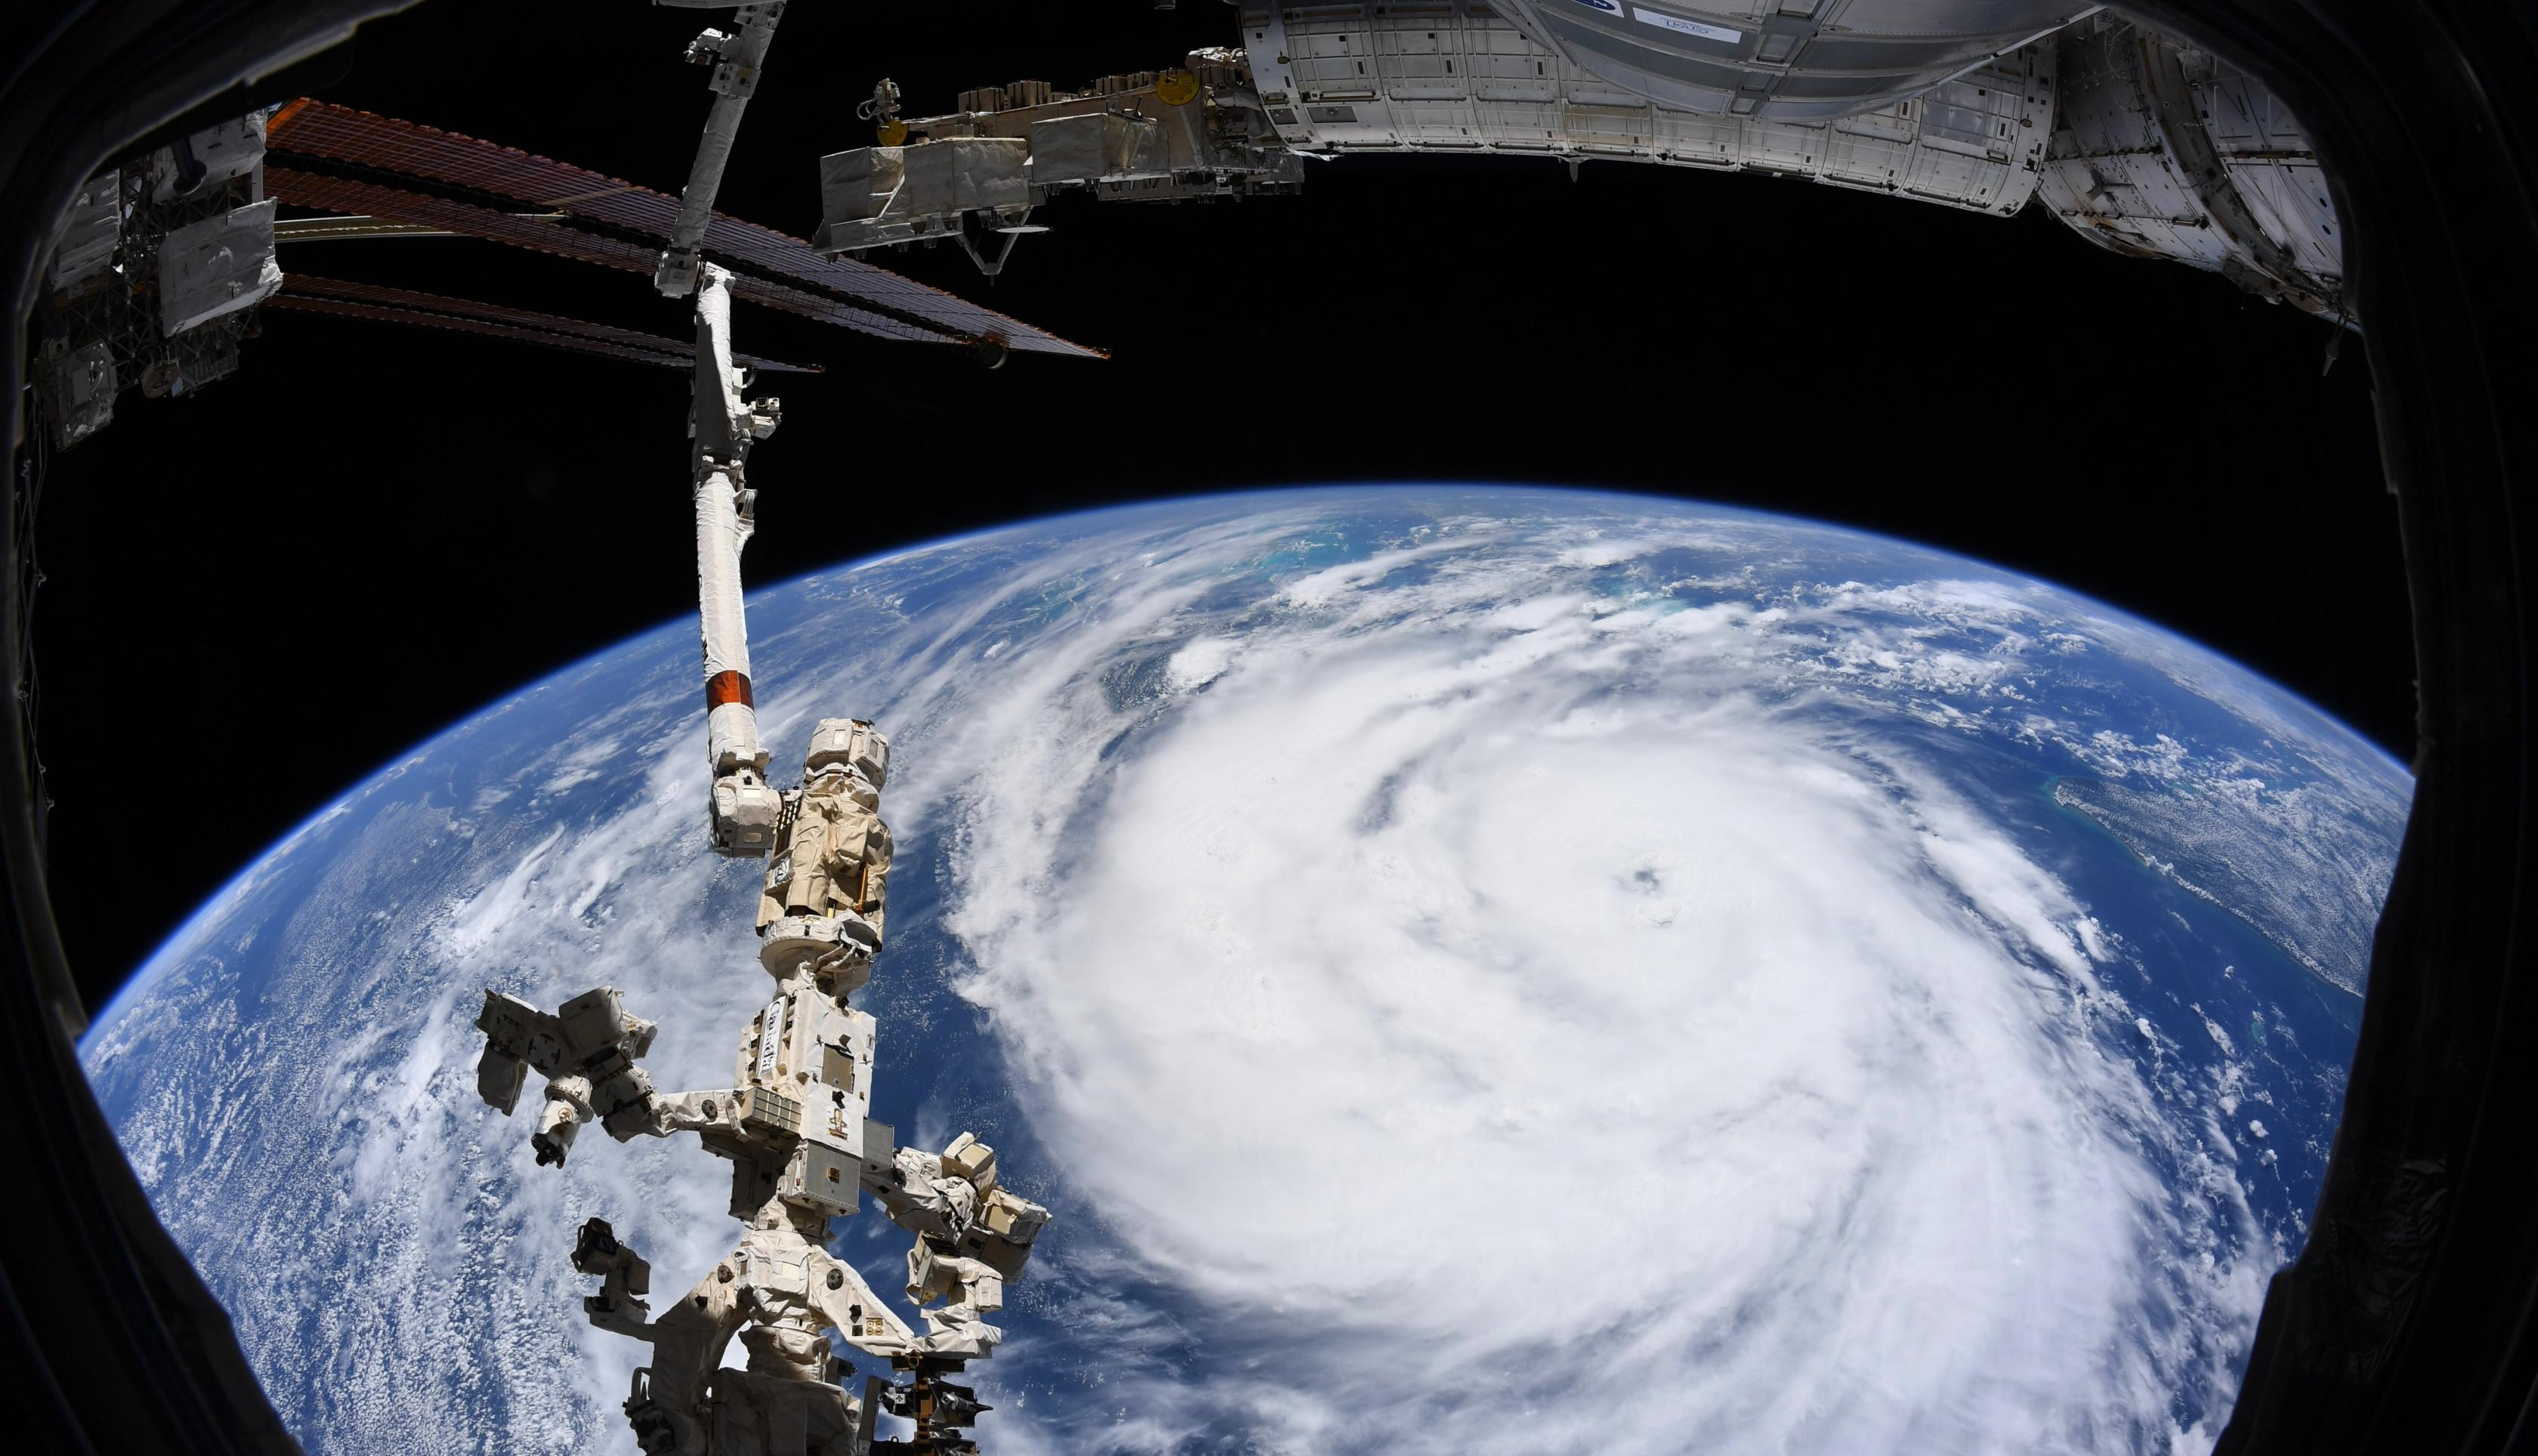 Astronauts onboard the International Space Station (ISS) captured this photograph of Hurricane Ida on Aug. 29, 2021. Click here to learn more about how ISS photography is used to monitor disasters and provide situational awareness to aid response efforts on the ground. Credits: European Space Agency